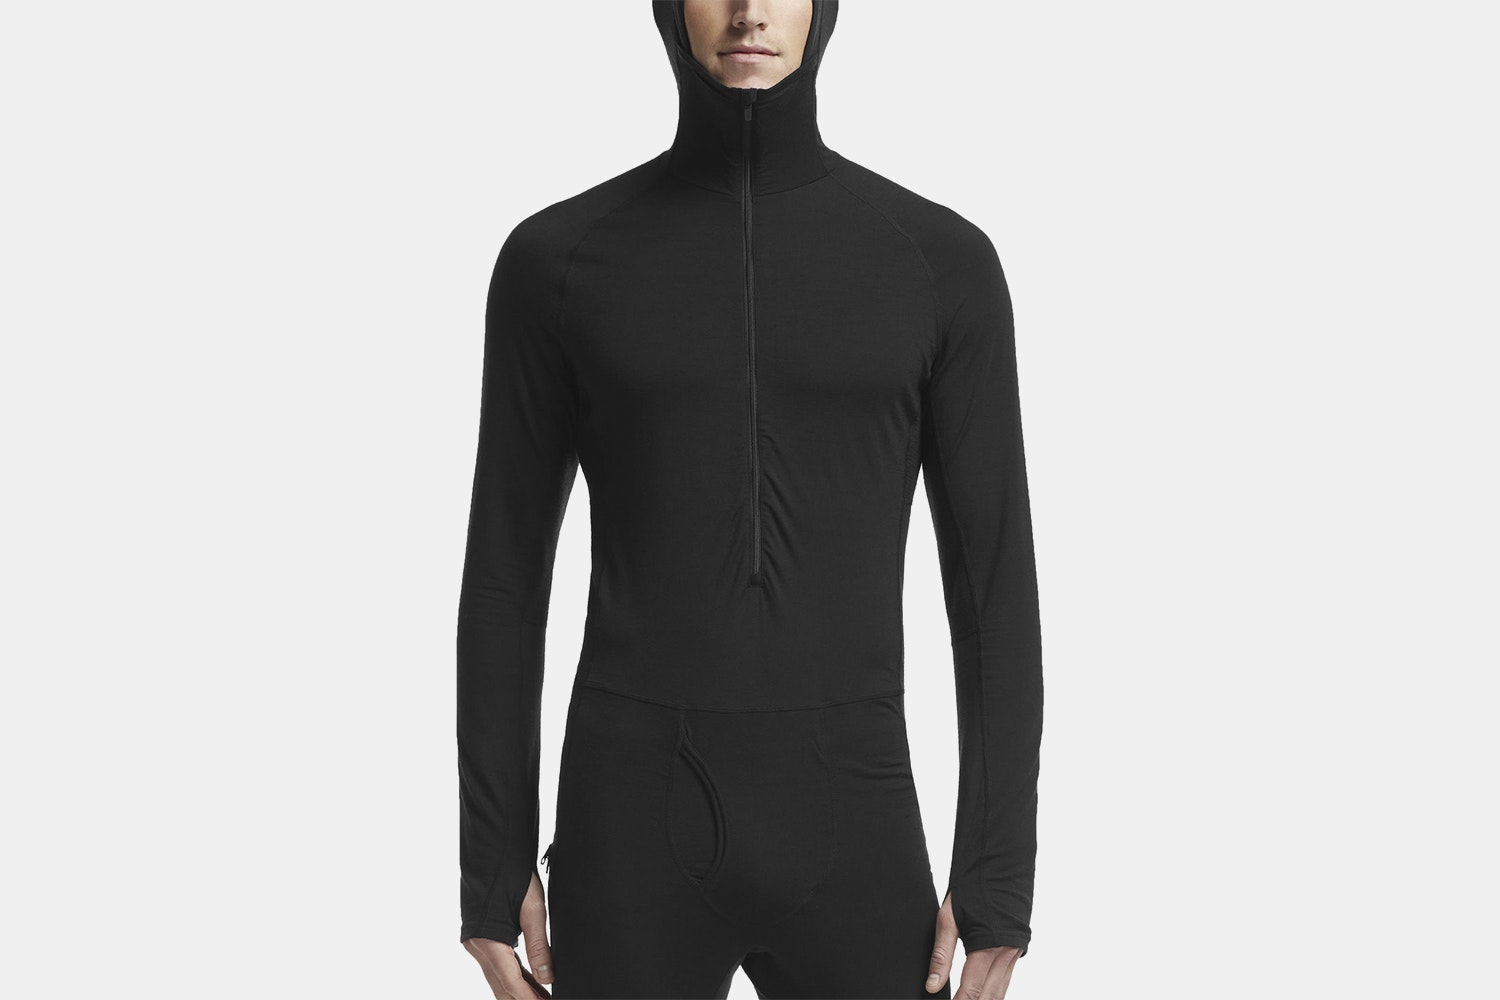 Icebreaker Men's Zone One Sheep Suit